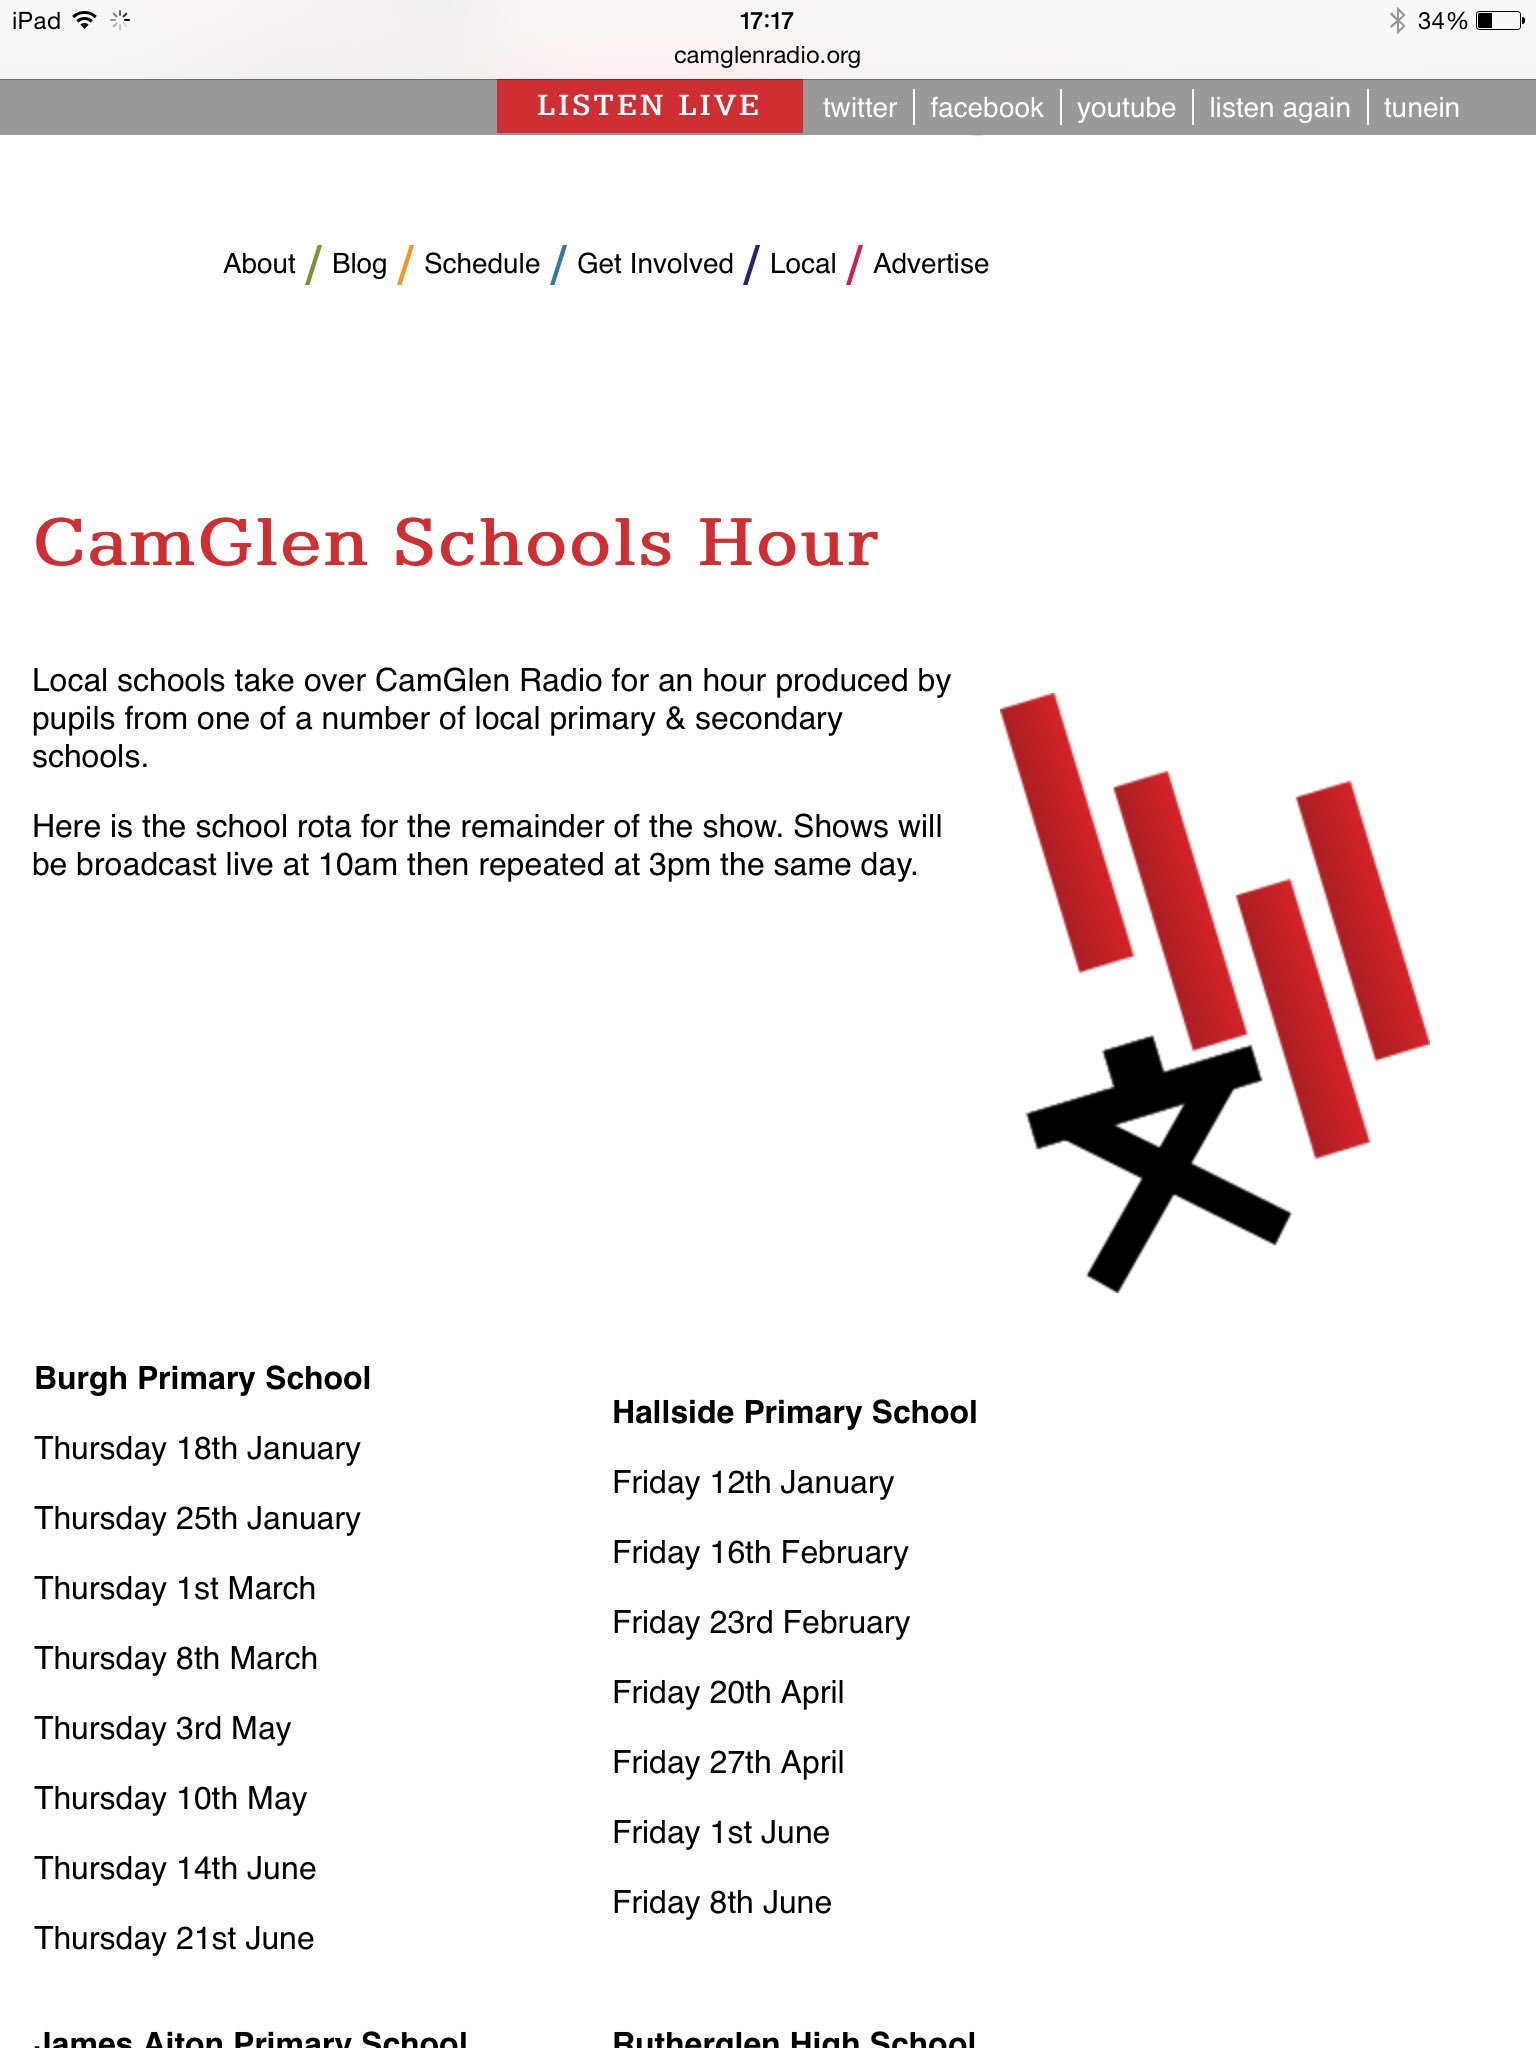 Our Camglen Radio Show is back tomorrow (19/1) at 10am. Listen live at 107.9fm or online at https://t.co/wKegaIiMb0 https://t.co/nxQj0f4plT